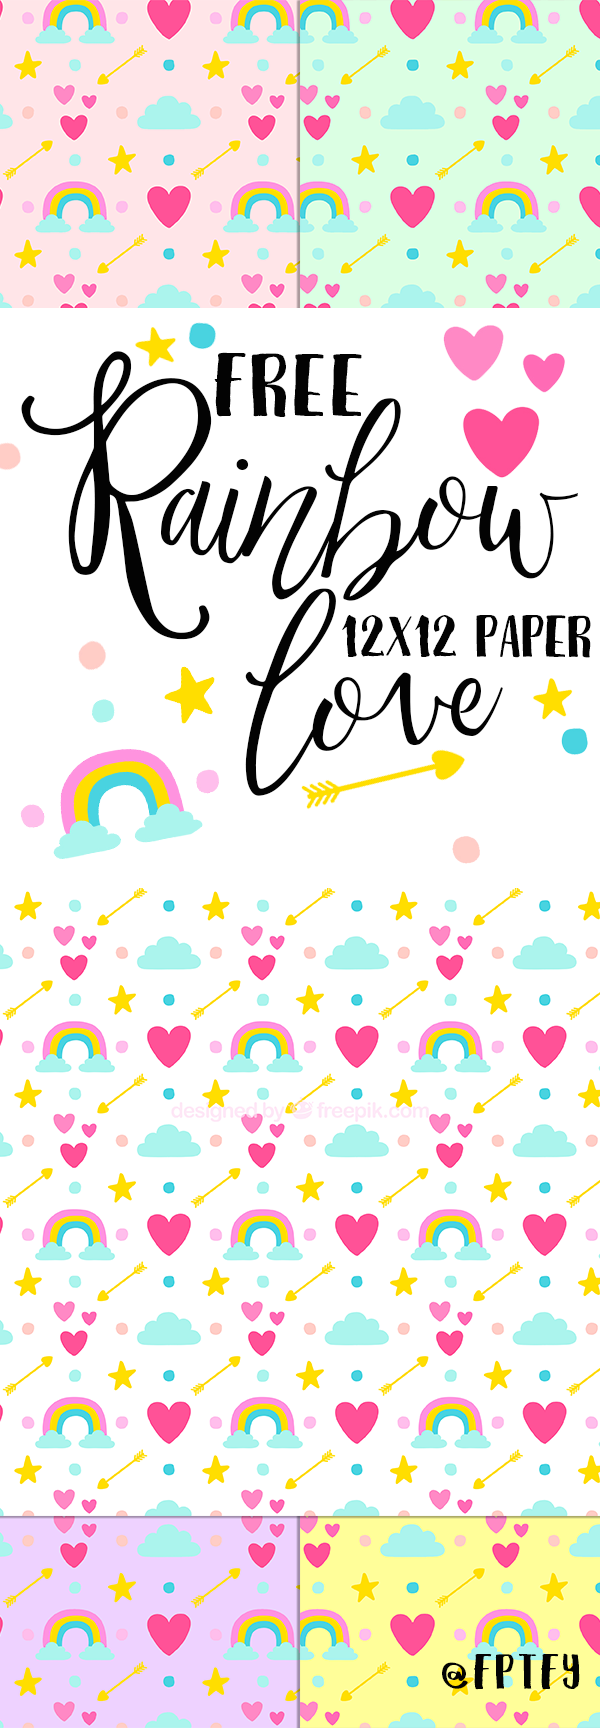 free-rainbow-love-12x12-digital-paper-fptfy-1